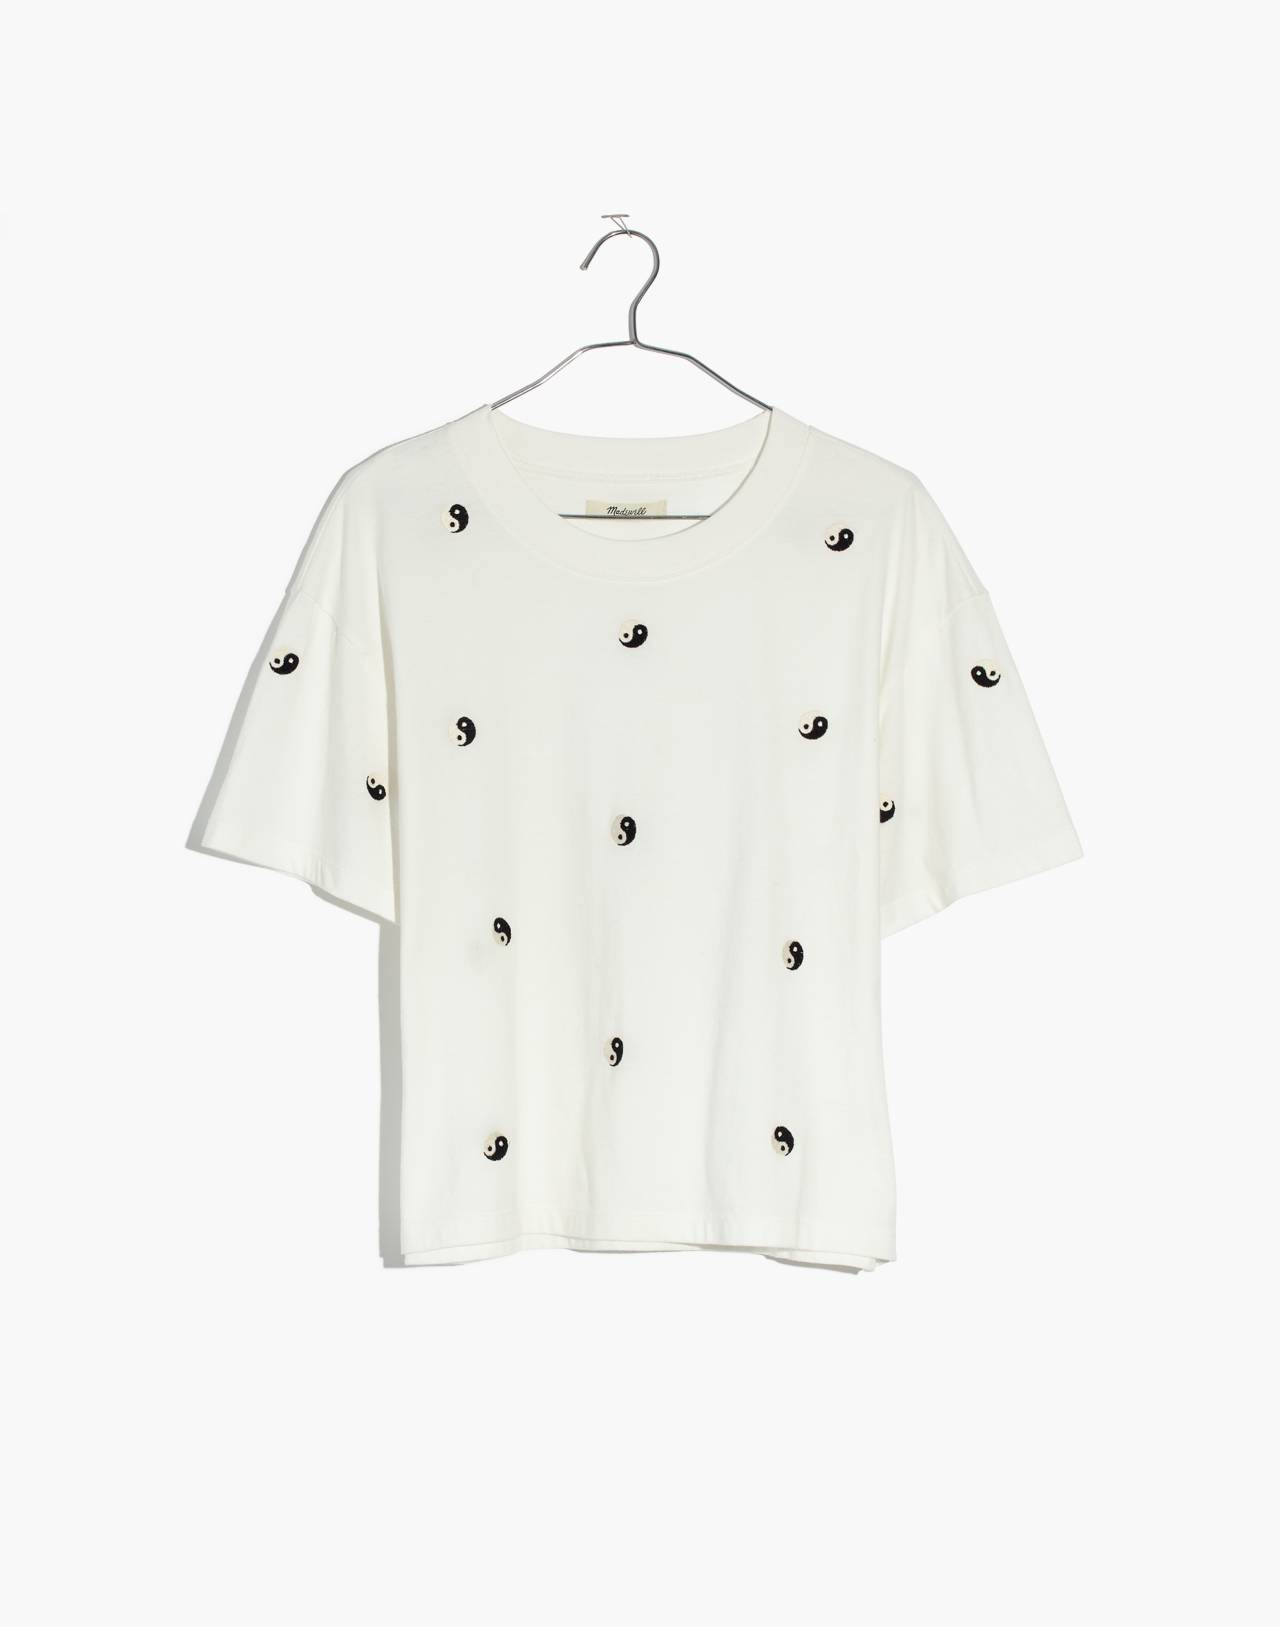 Embroidered Yin-Yang Easy Crop Tee in yin white wash image 4